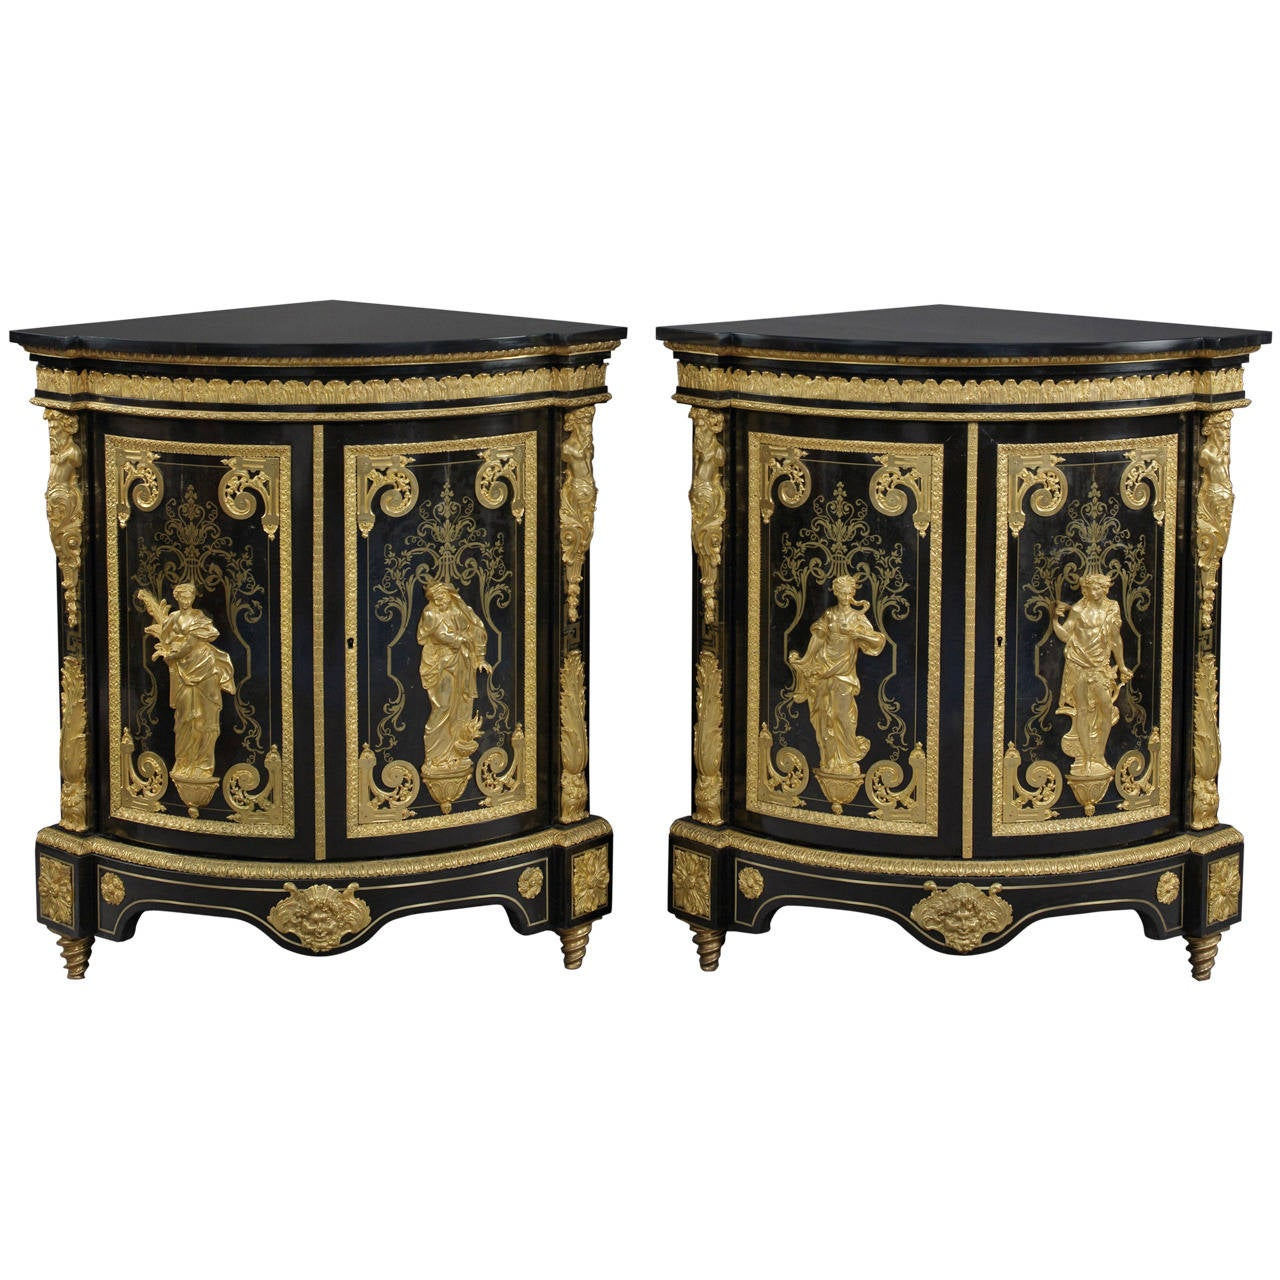 Fine Pair of Boulle Marquetry Inlaid Corner Cabinets by Béfort Jeune